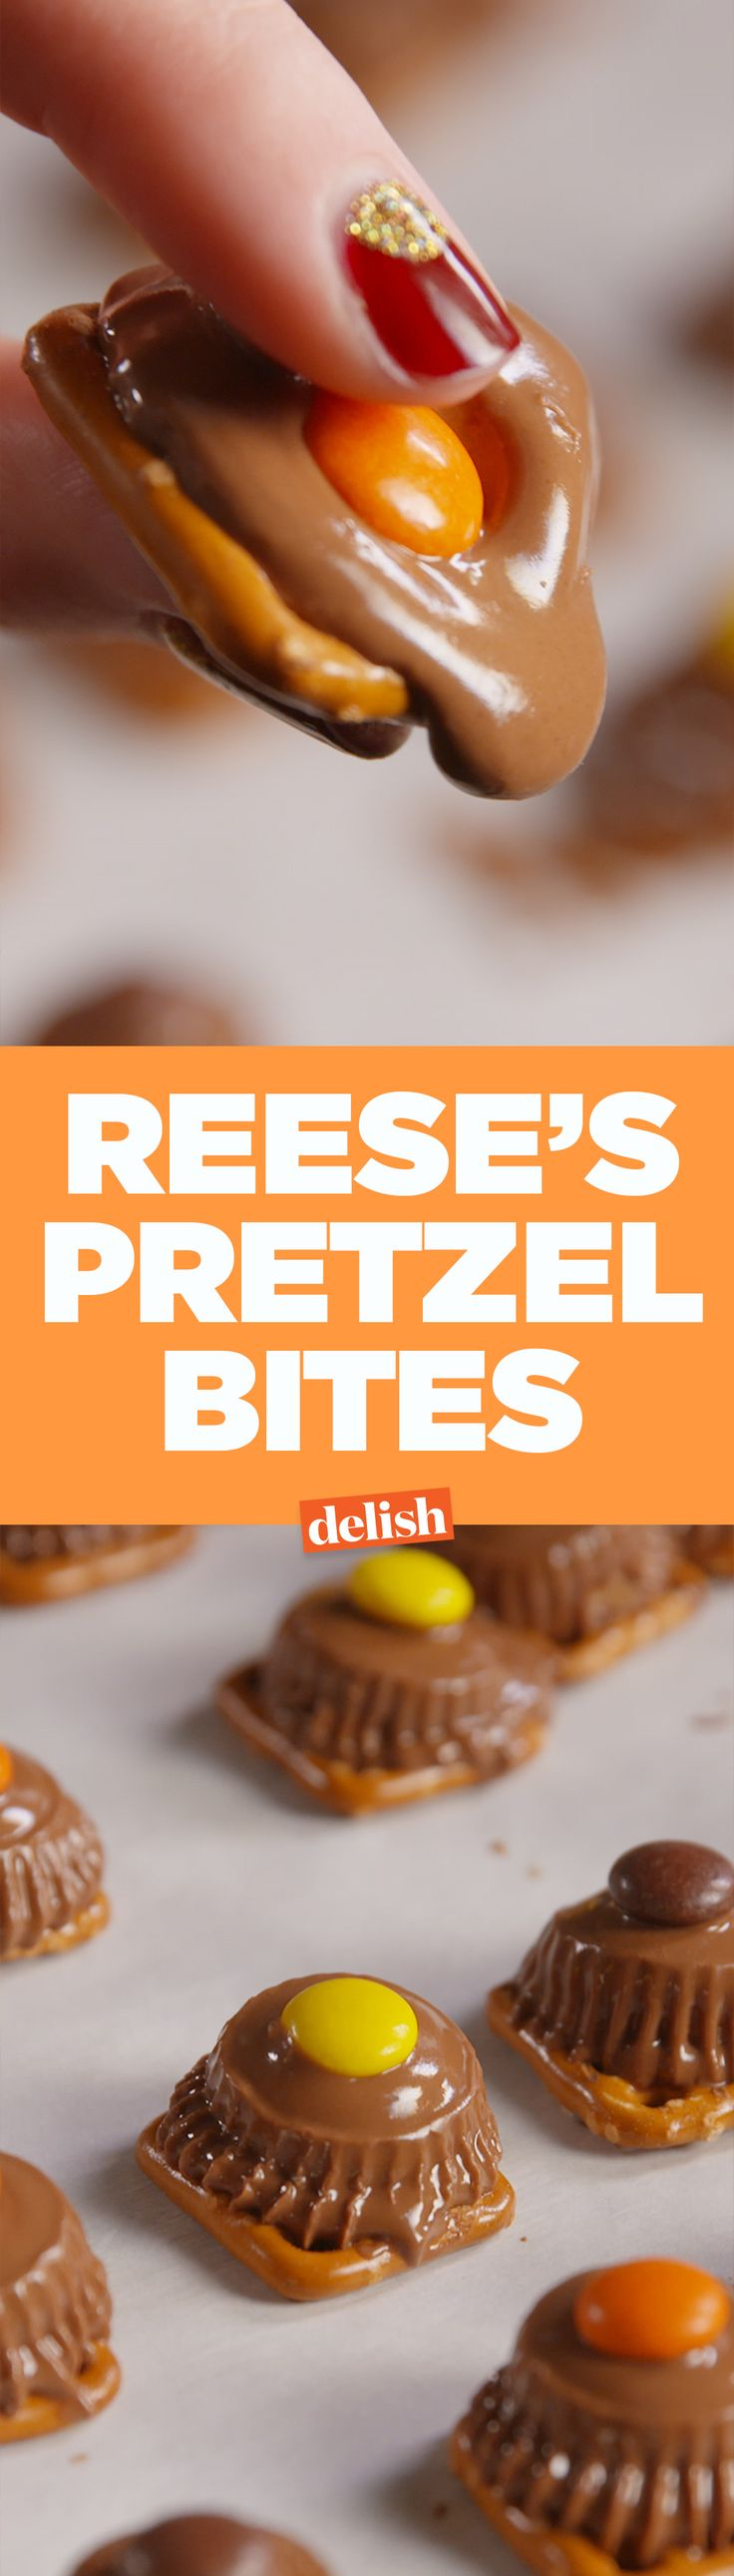 These Reese's Pretzel Bites are definitely the easiest dessert you'll ever make. Get the recipe on Delish.com.